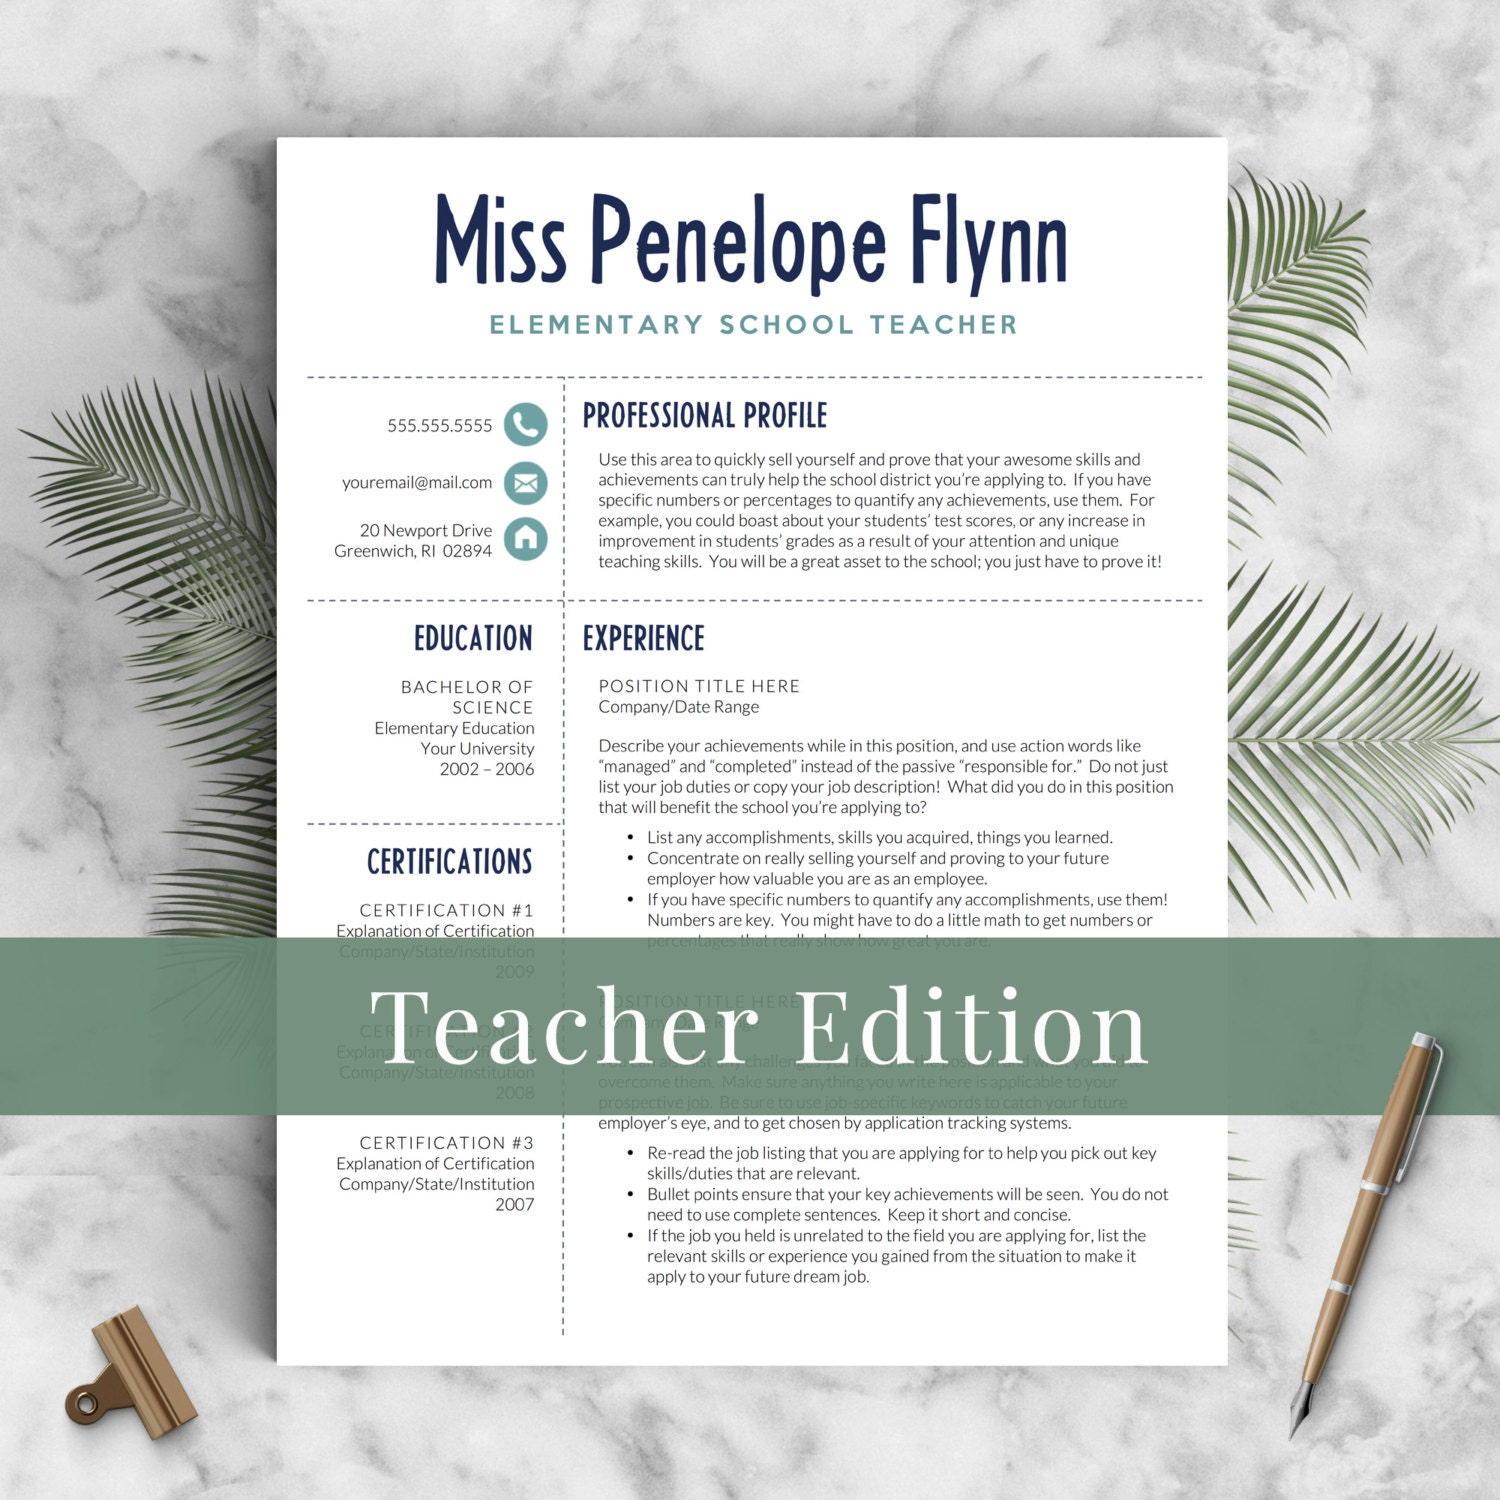 Teaching resume template gerhard leixl yelopaper